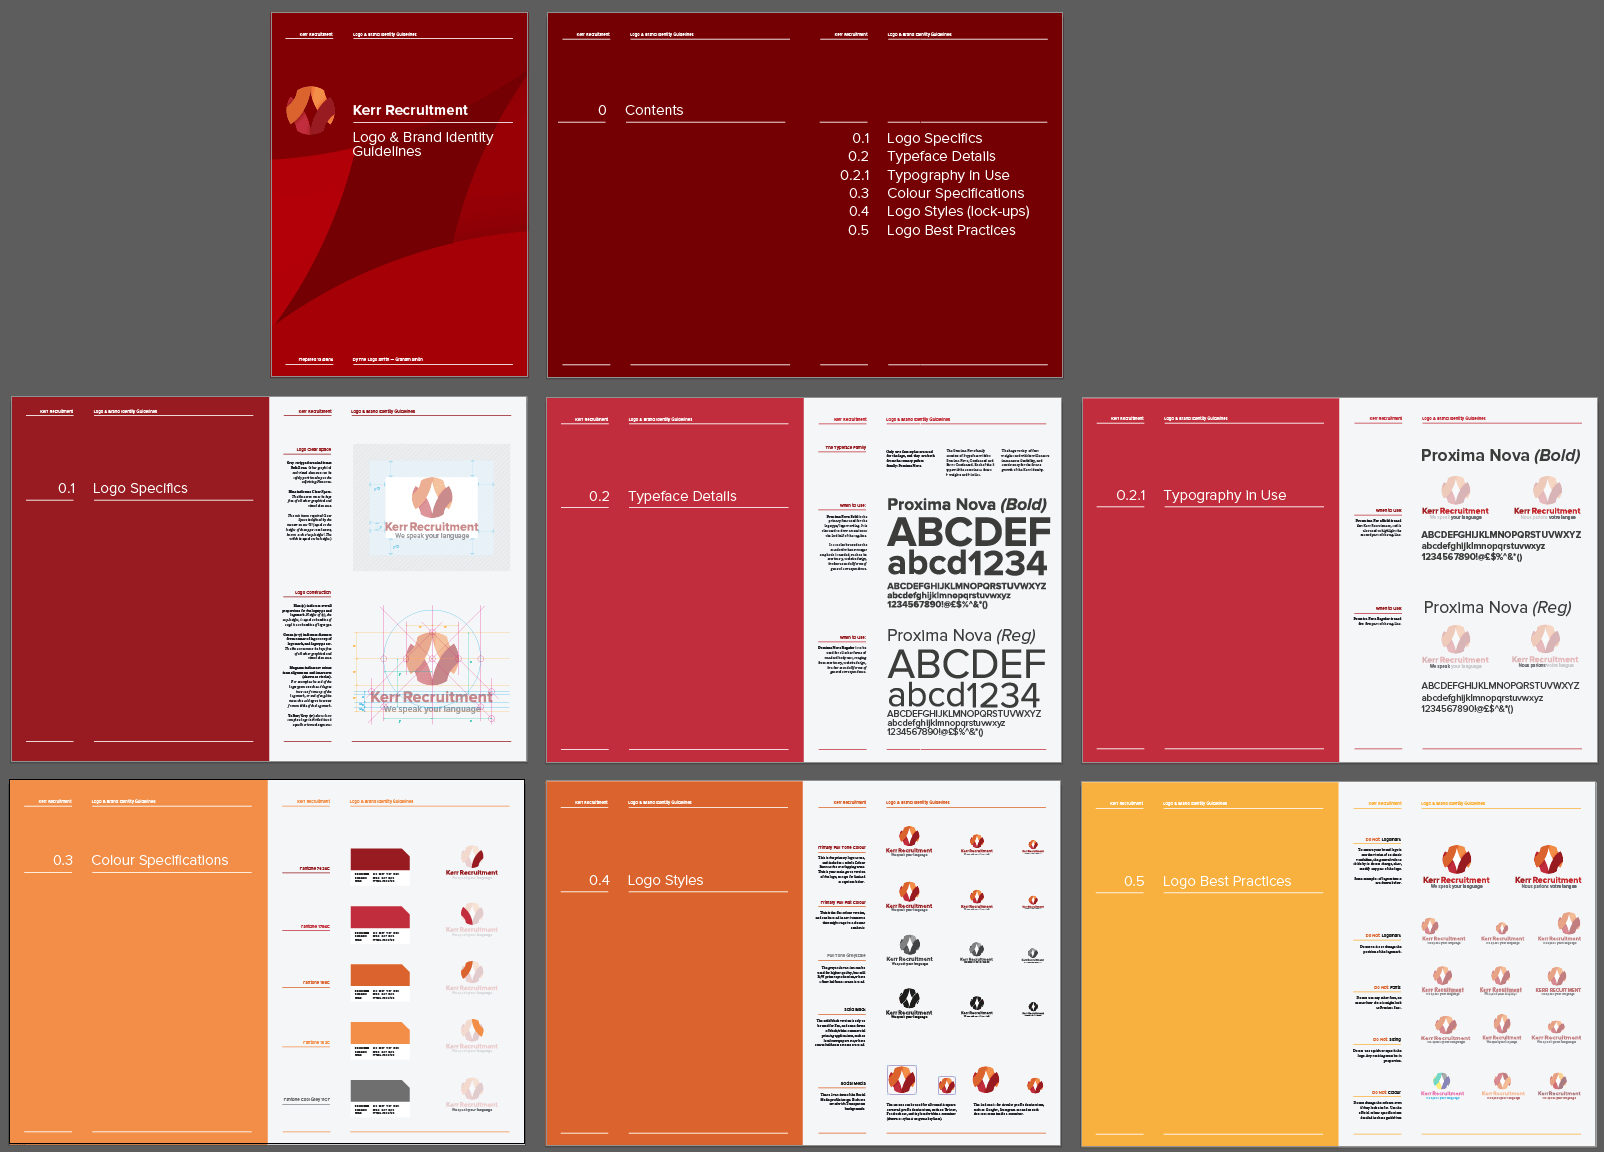 14-16 Page Logo & Brand Identity Guidelines Template for Download